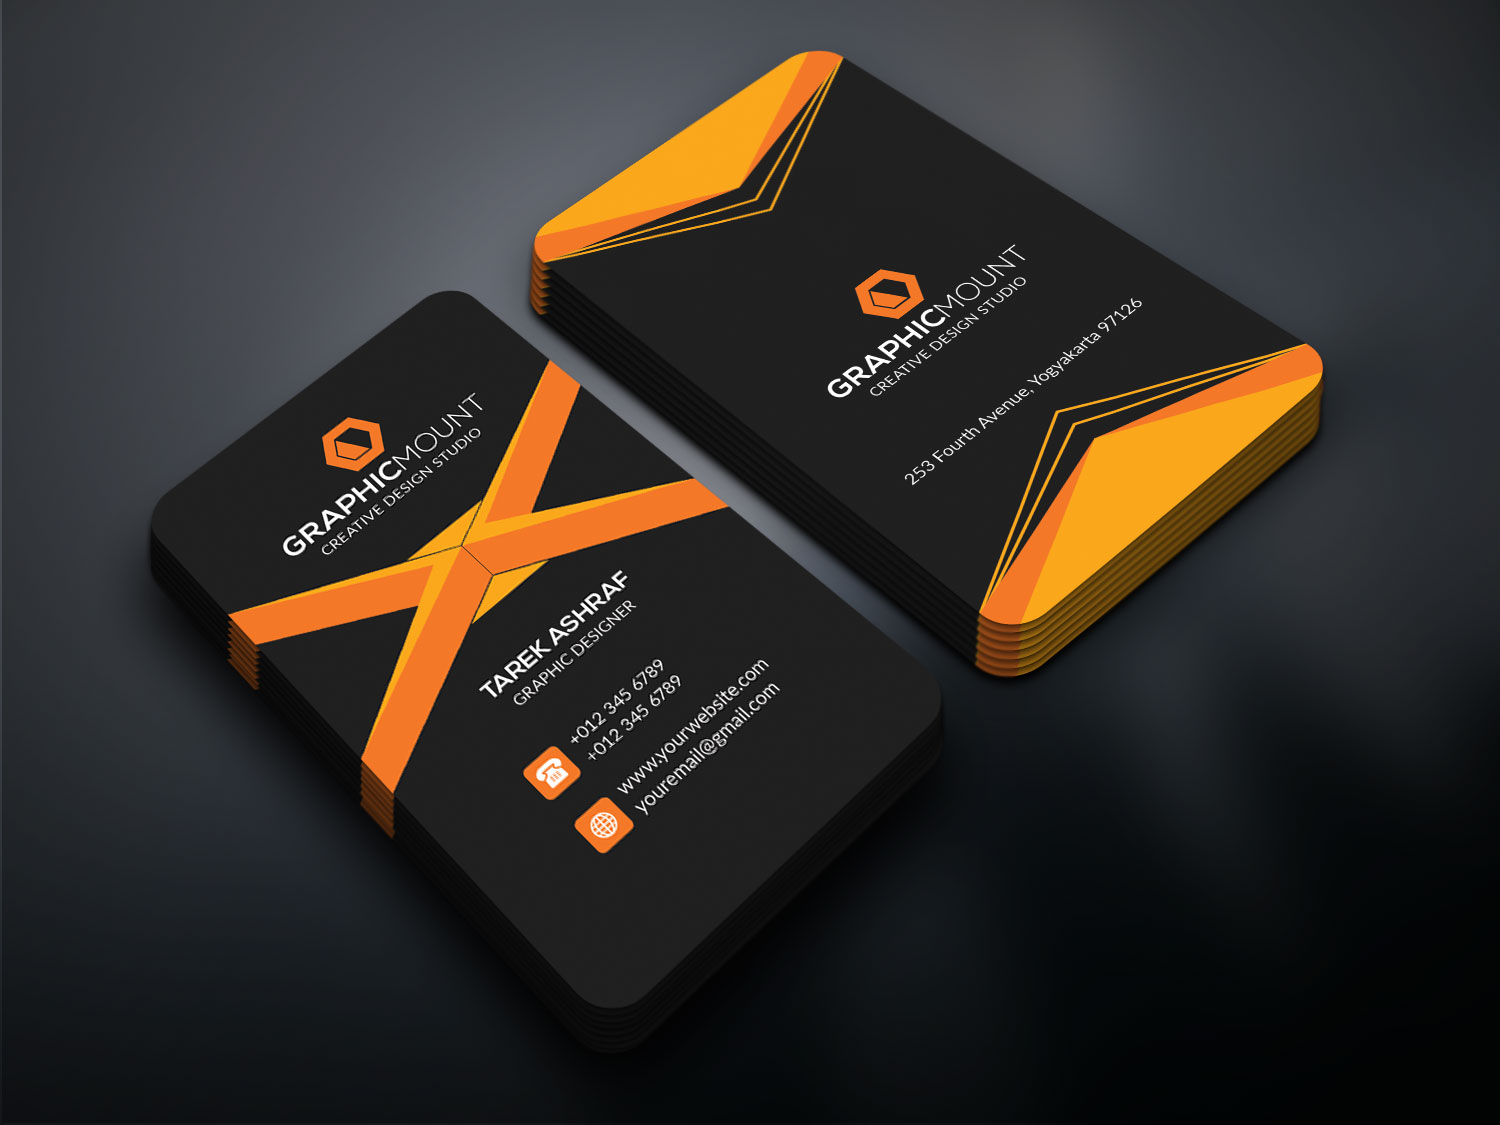 Creative business card by tarek elhelow design bundles creative business card example image 1 reheart Image collections